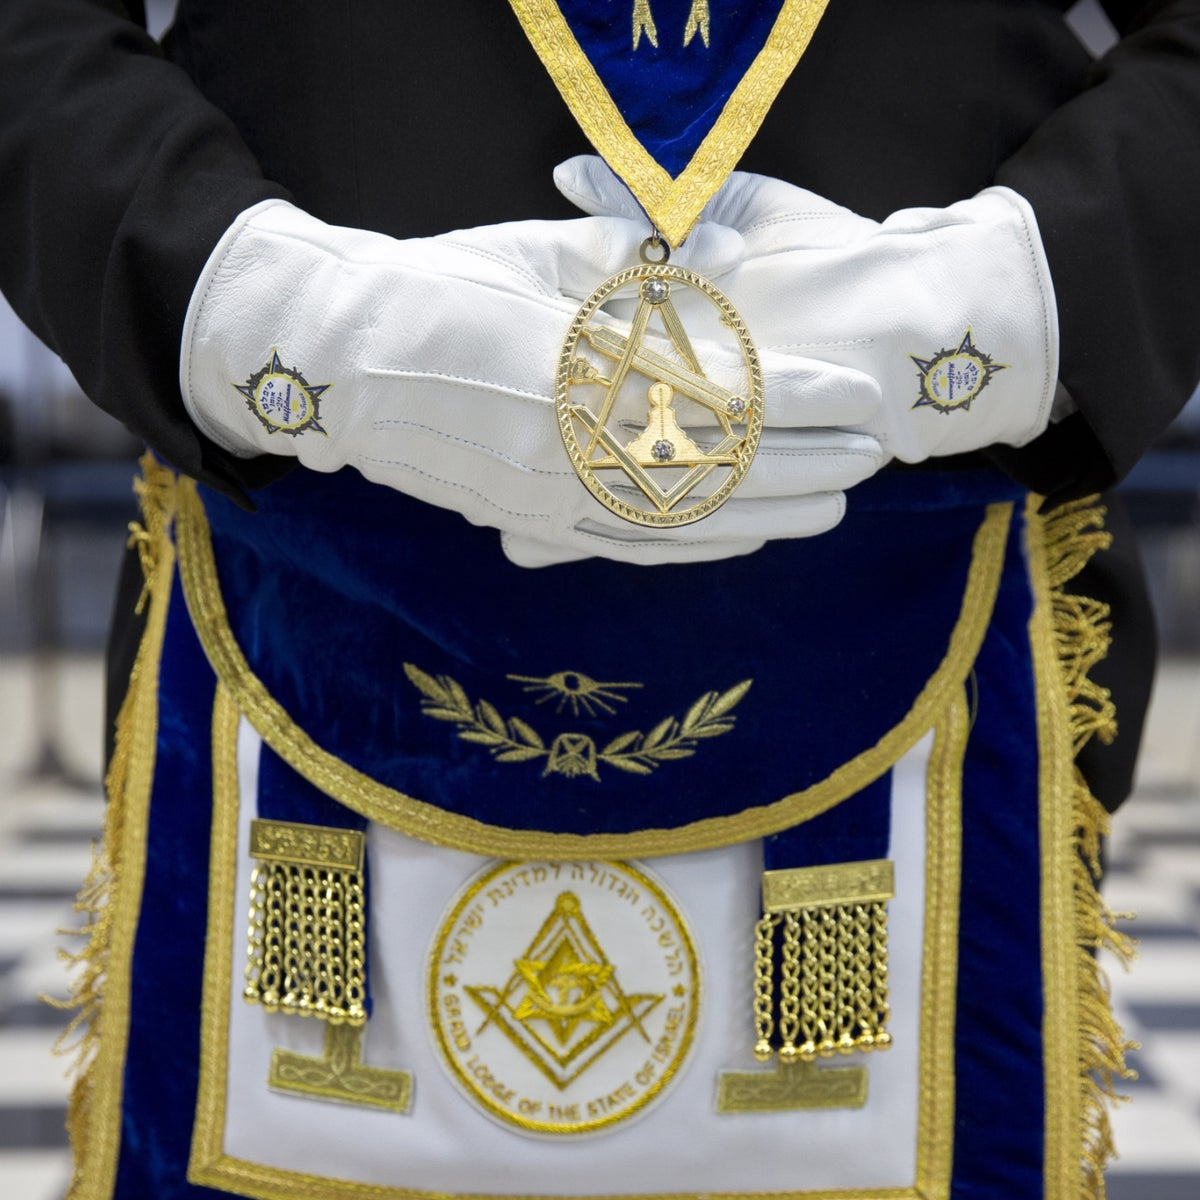 The Freemason symbols are displayed at the Grand Lodge of the Freemasons in Israel, in Tel Aviv.